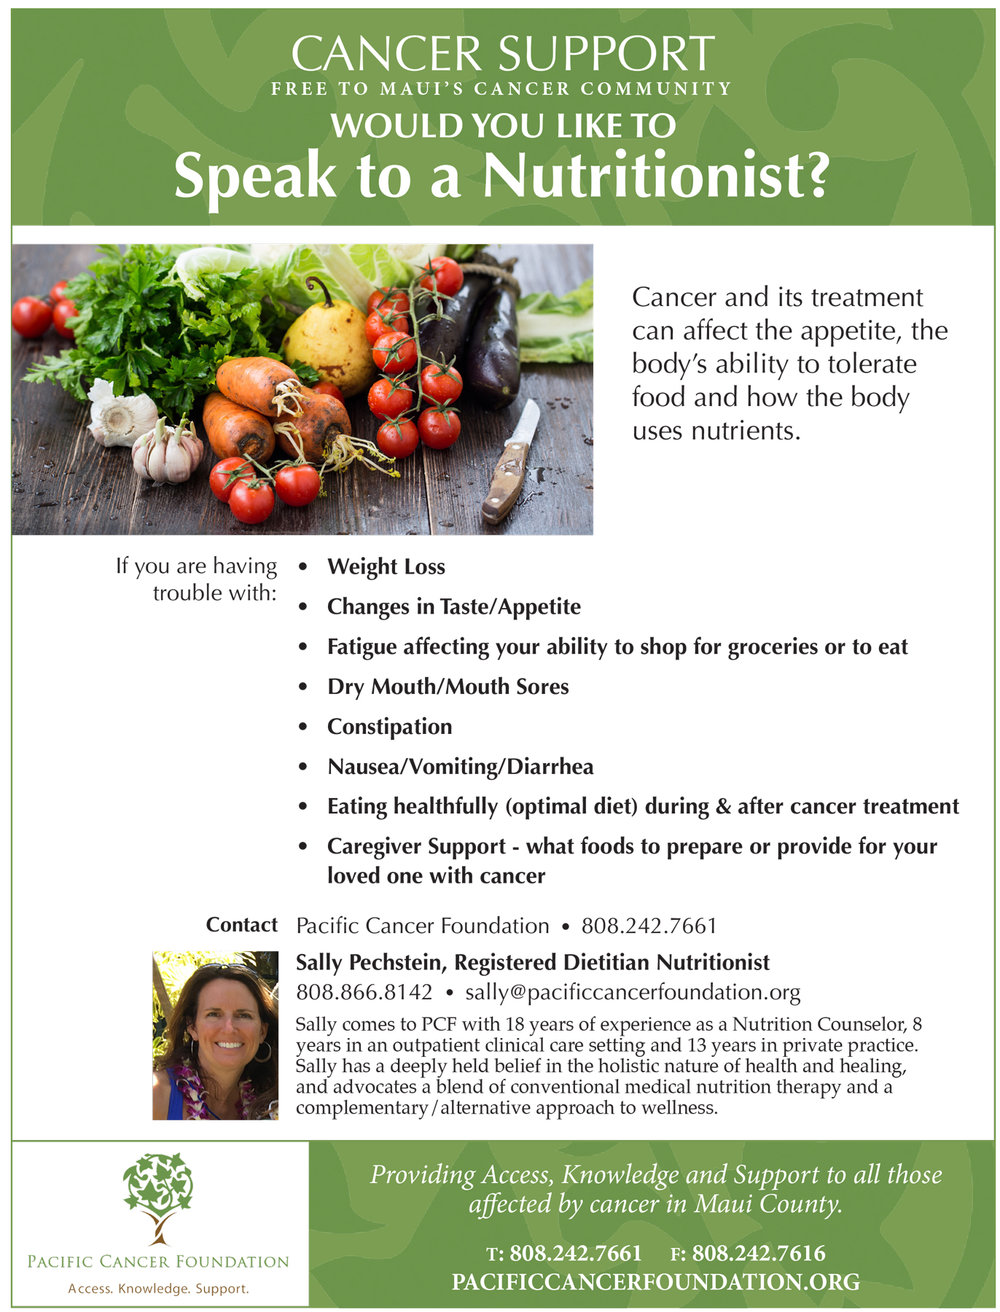 Nutritional-Support-flyer.jpg